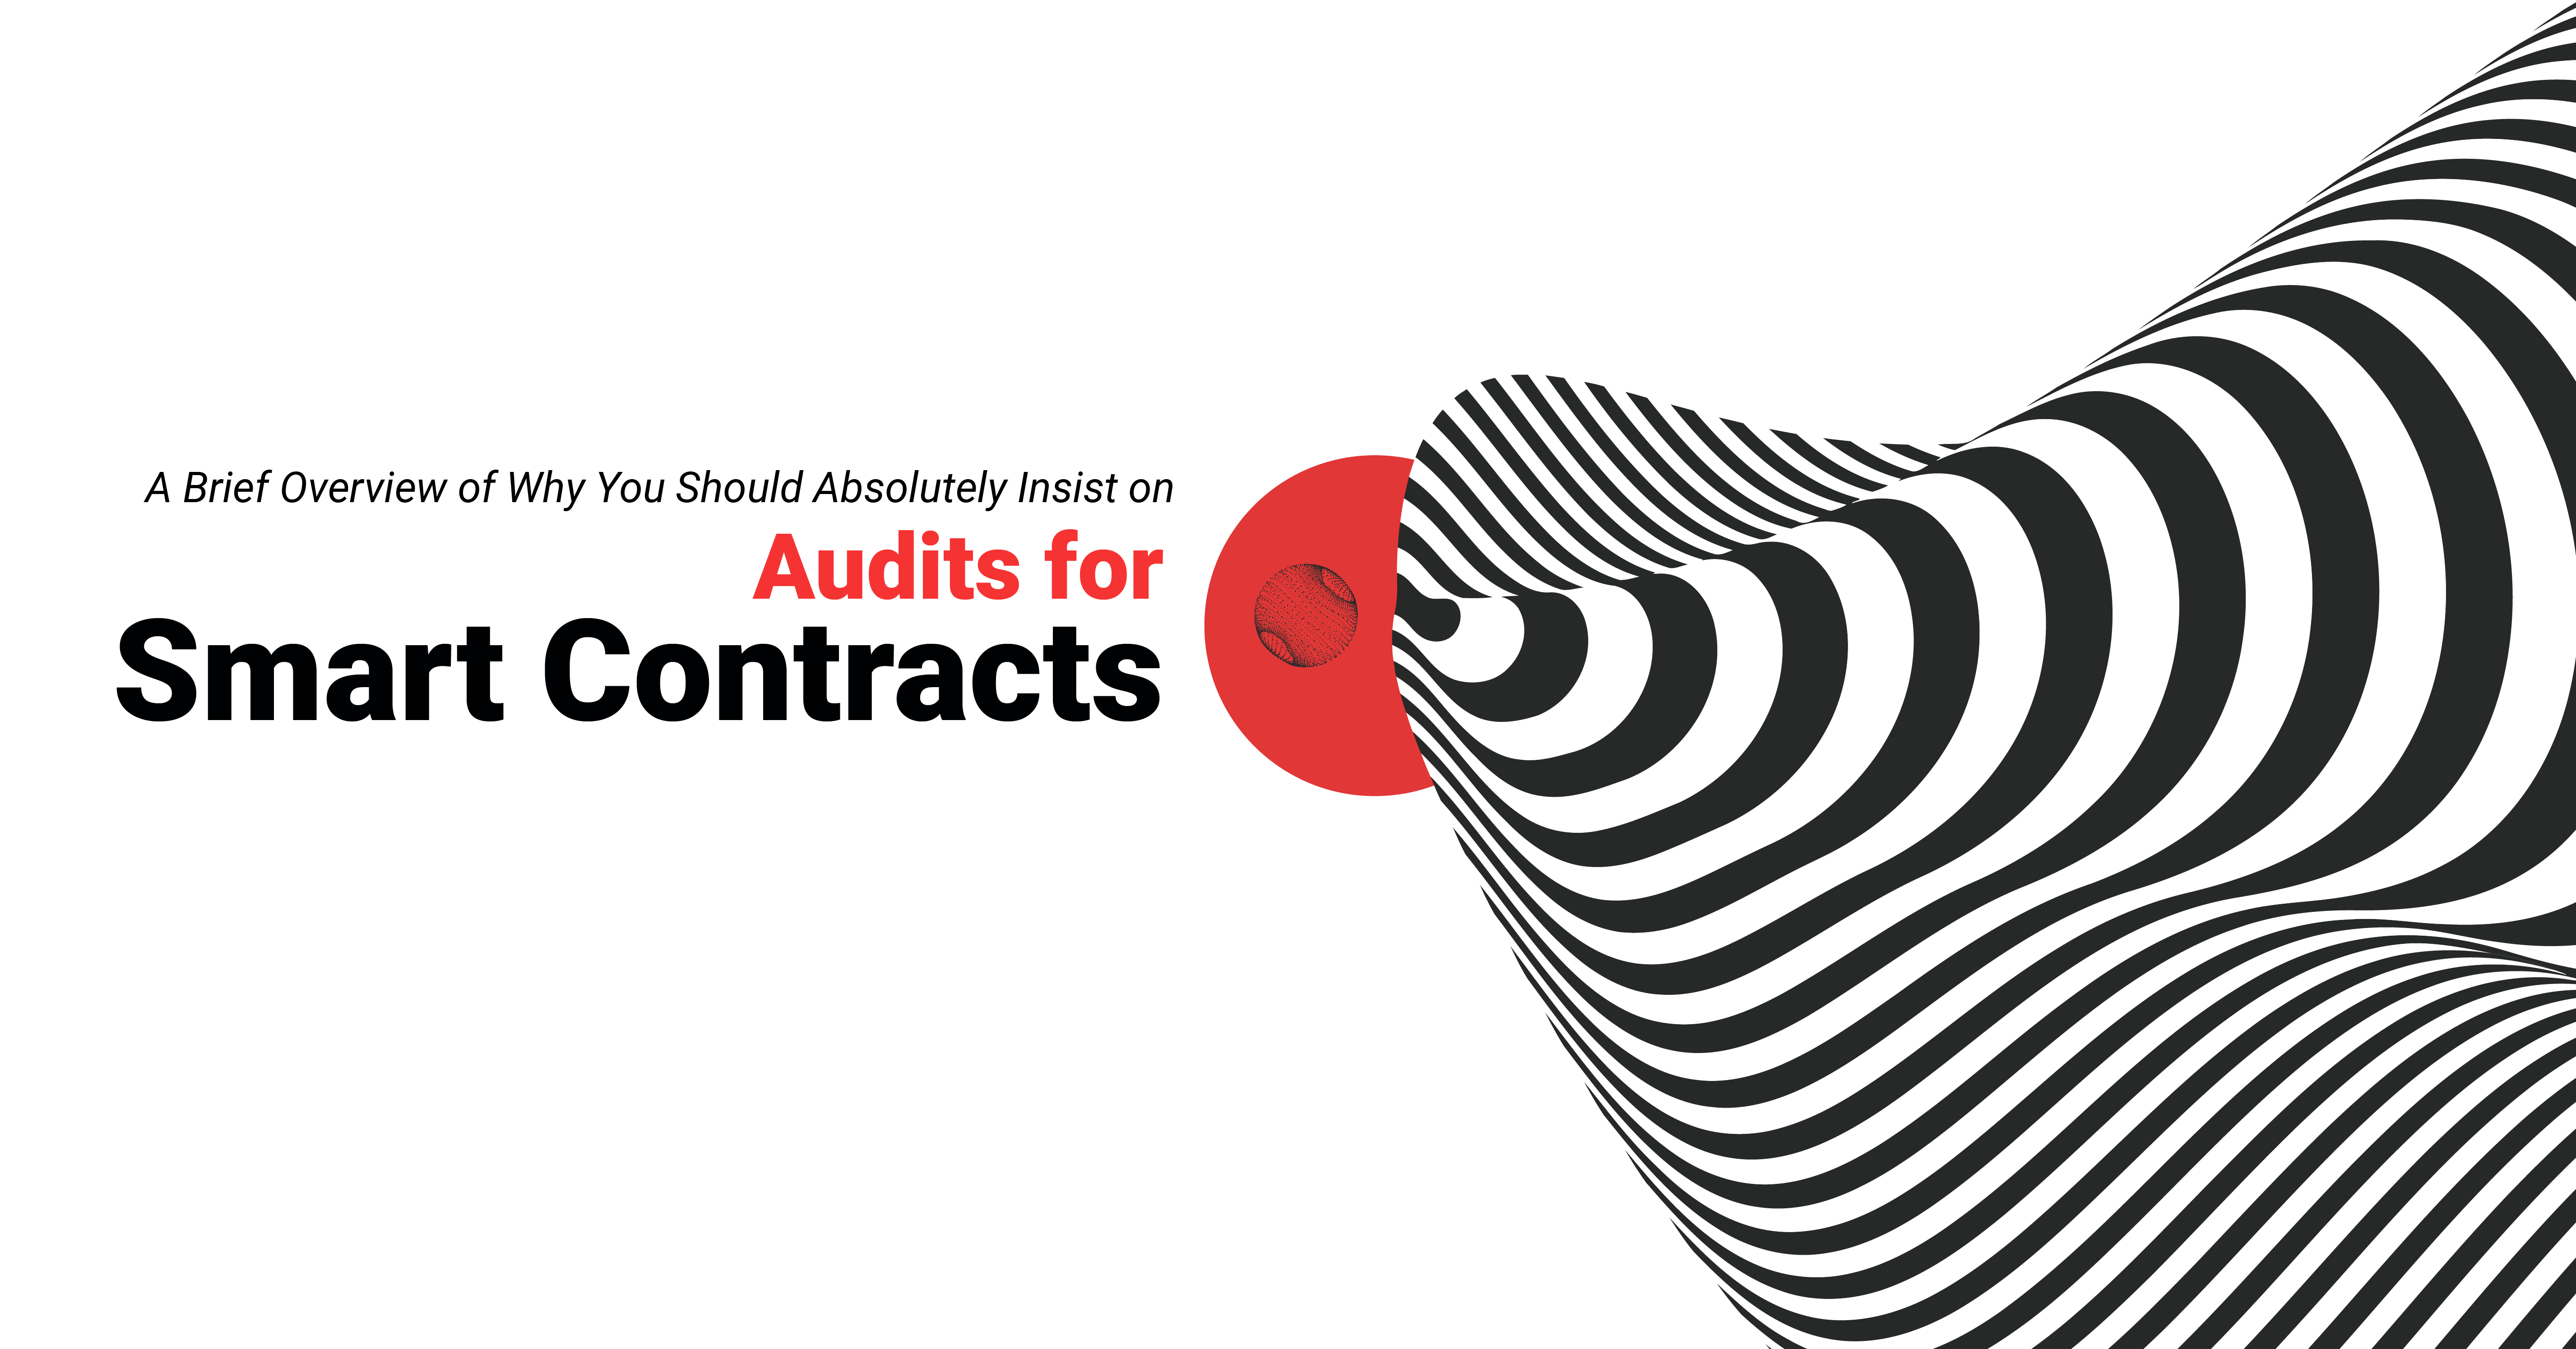 A Brief Overview of Why You Should Absolutely Insist on Audits for Smart Contracts